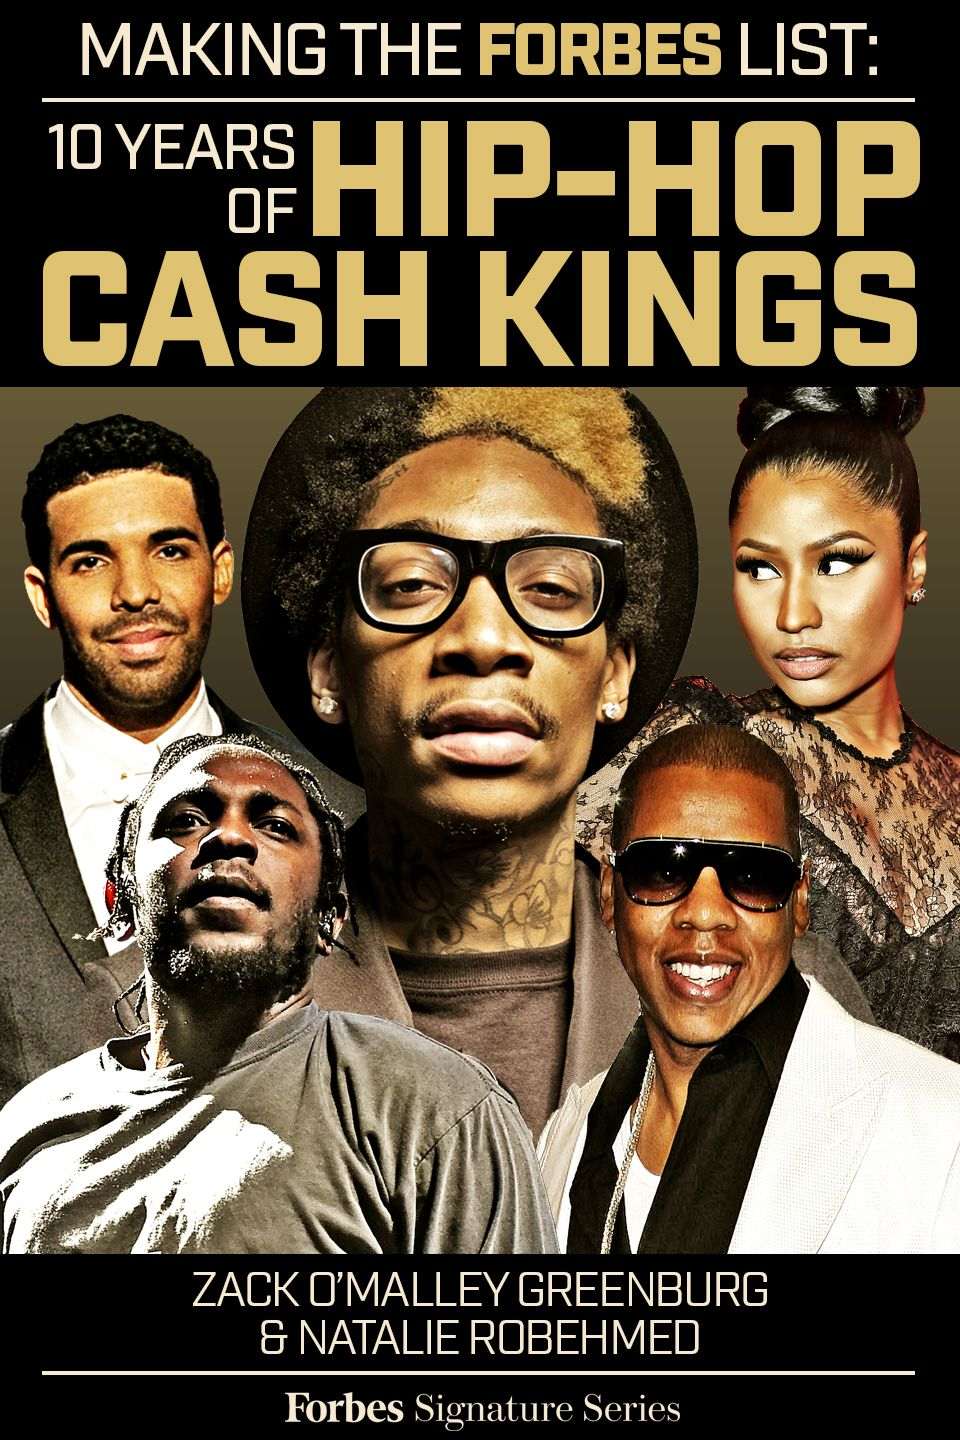 In 2007, FORBES debuted the world's first-ever ranking of the top earners in the genre of hip-hop. A decade later, we celebrate ten years of the Hip-Hop Cash Kings list. This eBook compiles the rich ten-year history of Hip-Hop Cash Kings data, interviews and features.